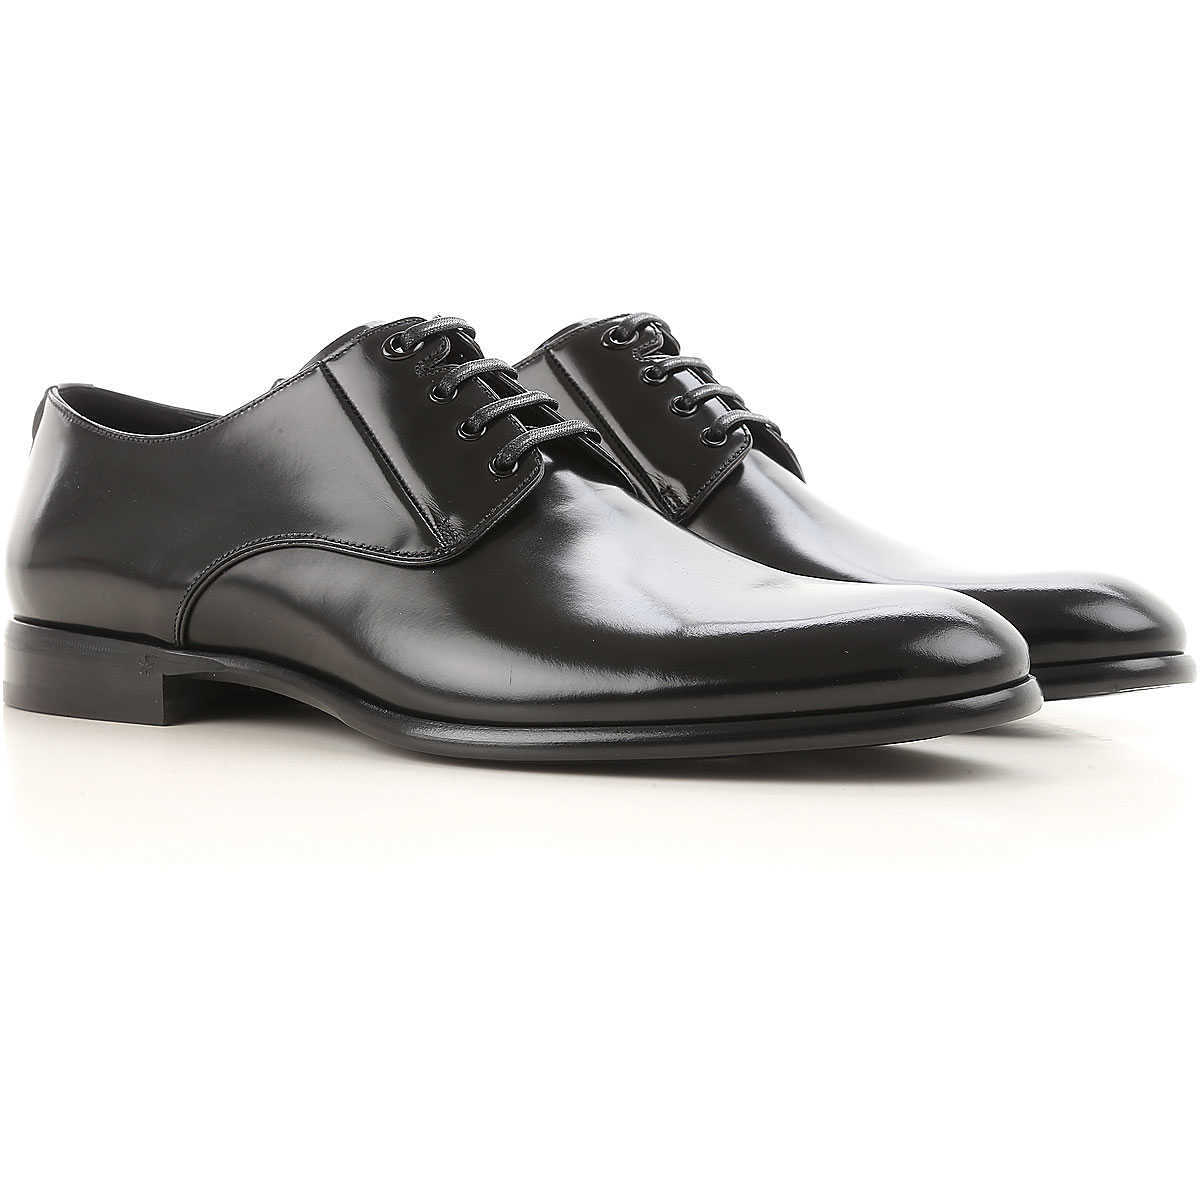 Dolce & Gabbana Lace Up Shoes for Men Oxfords Derbies and Brogues - GOOFASH